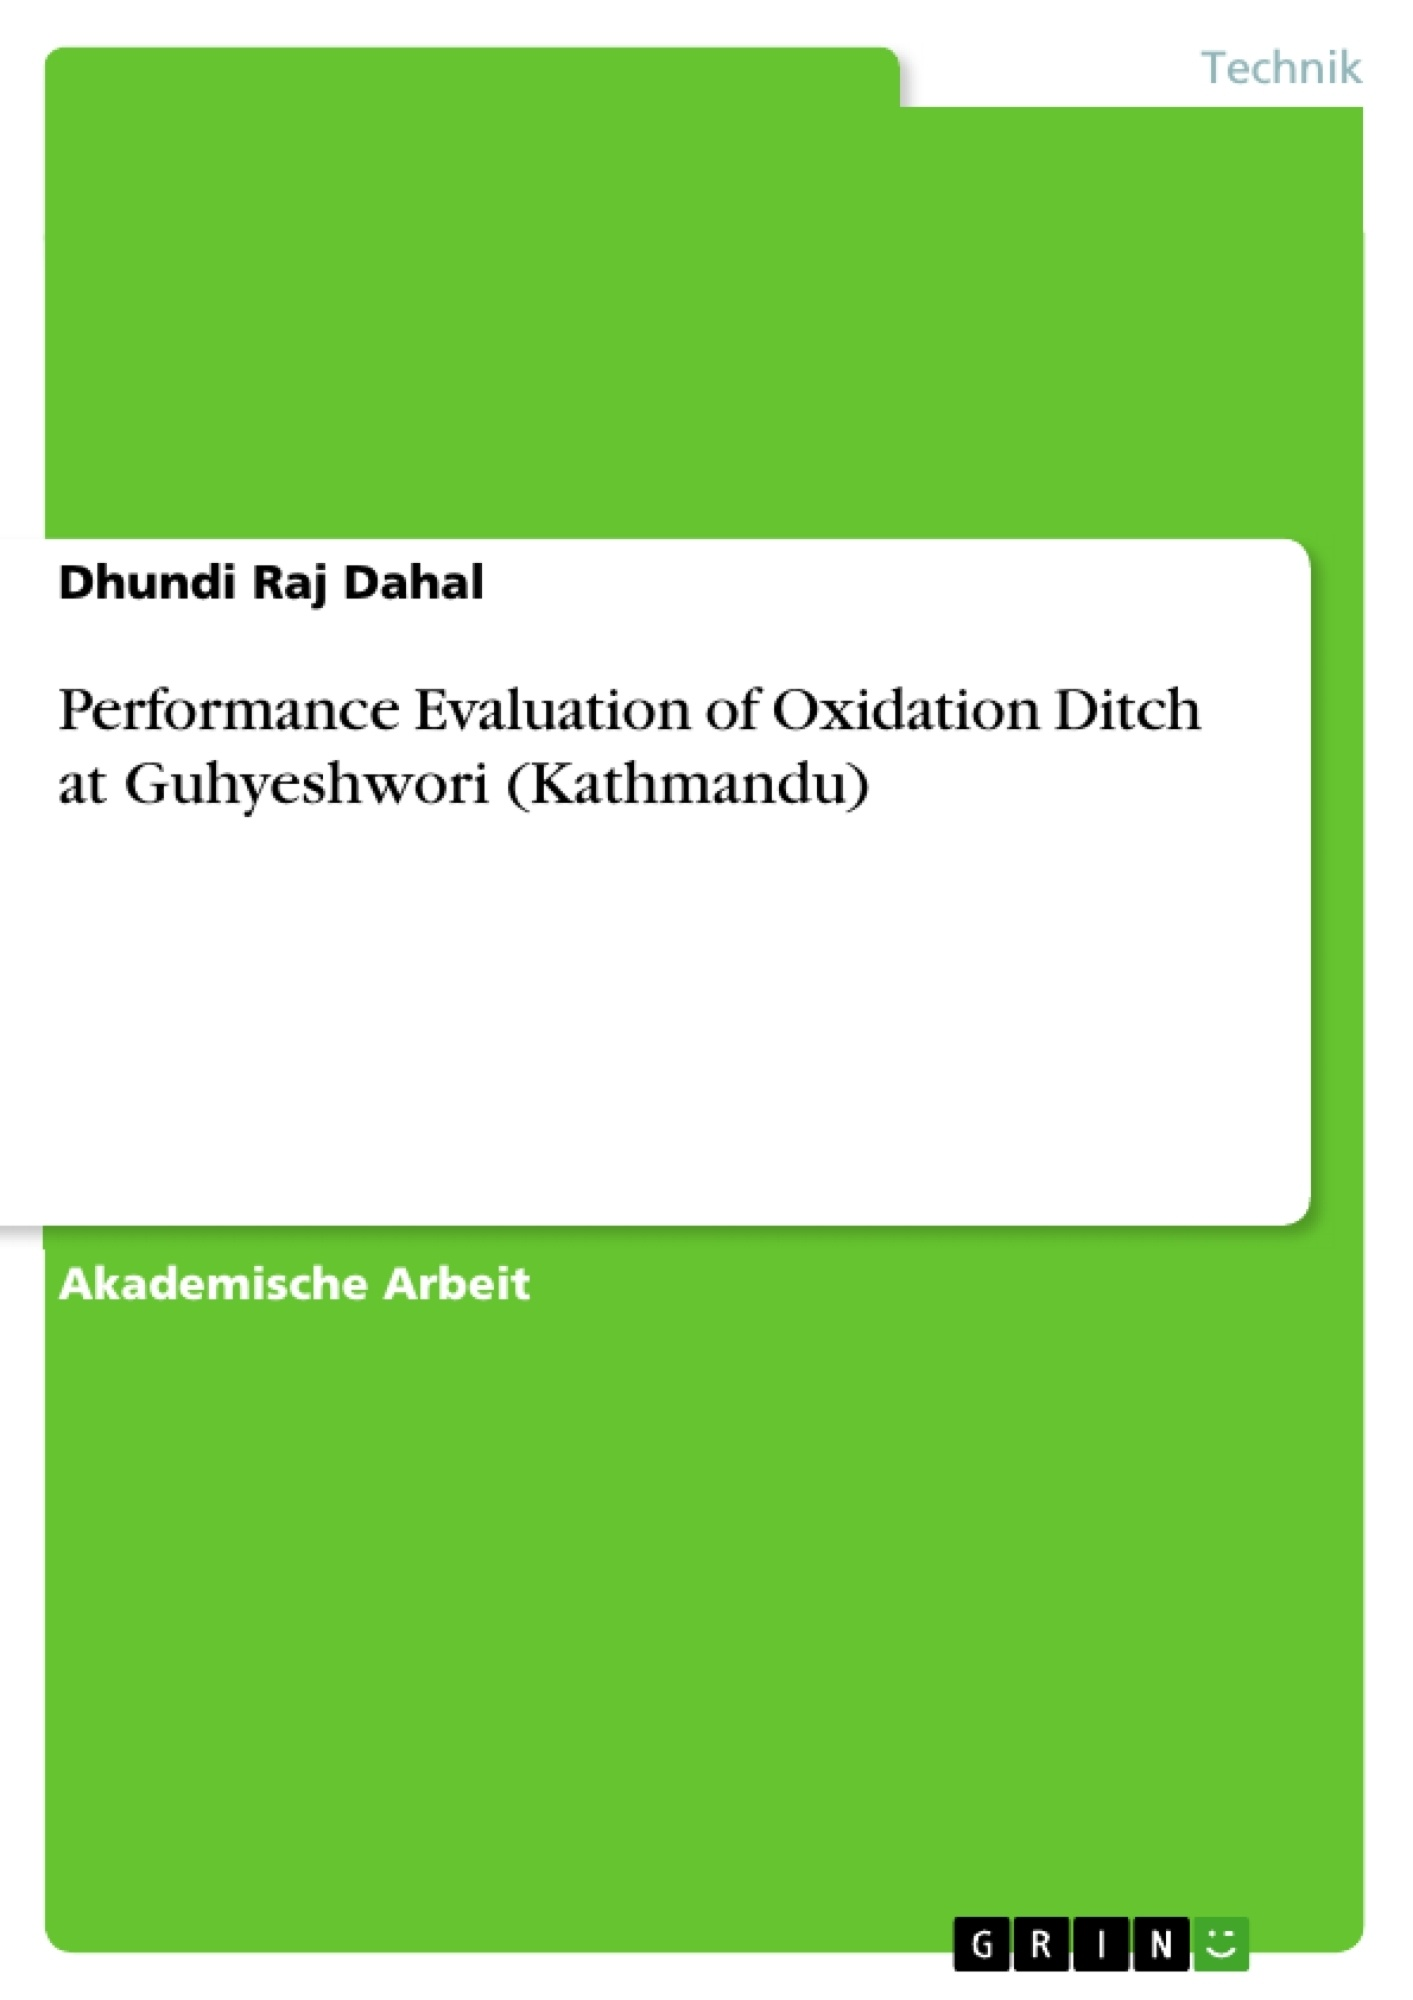 Titel: Performance Evaluation of Oxidation Ditch at Guhyeshwori (Kathmandu)